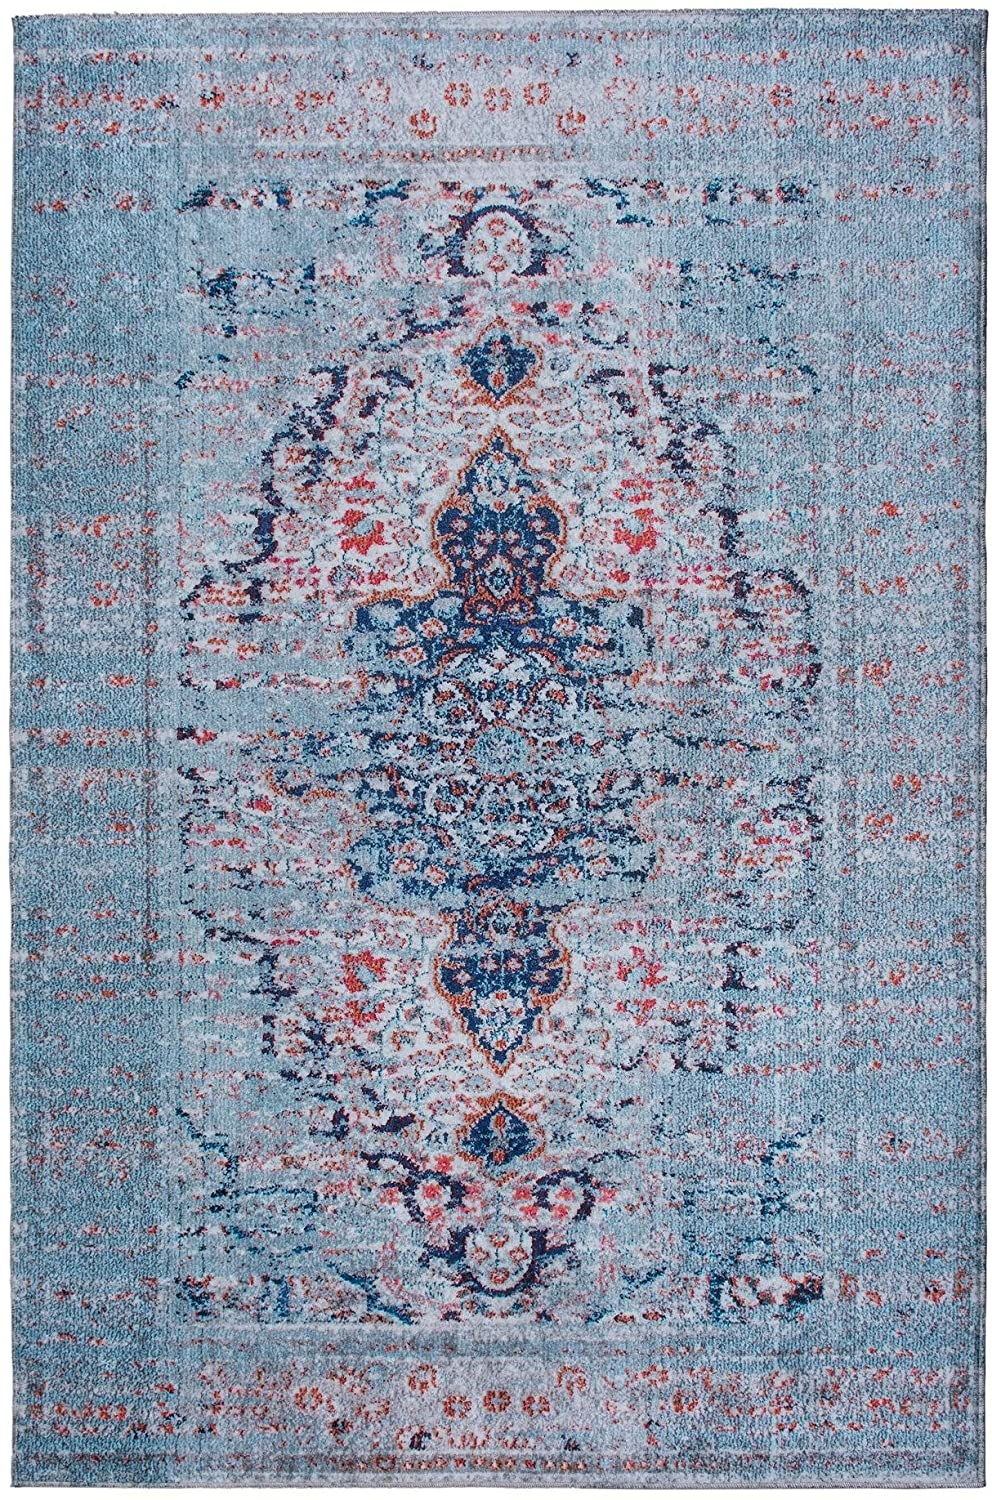 Mylife Rugs Traditional Vintage Non Slip Machine Washable Distressed Printed Area Rug, Blue Red 4'x6'